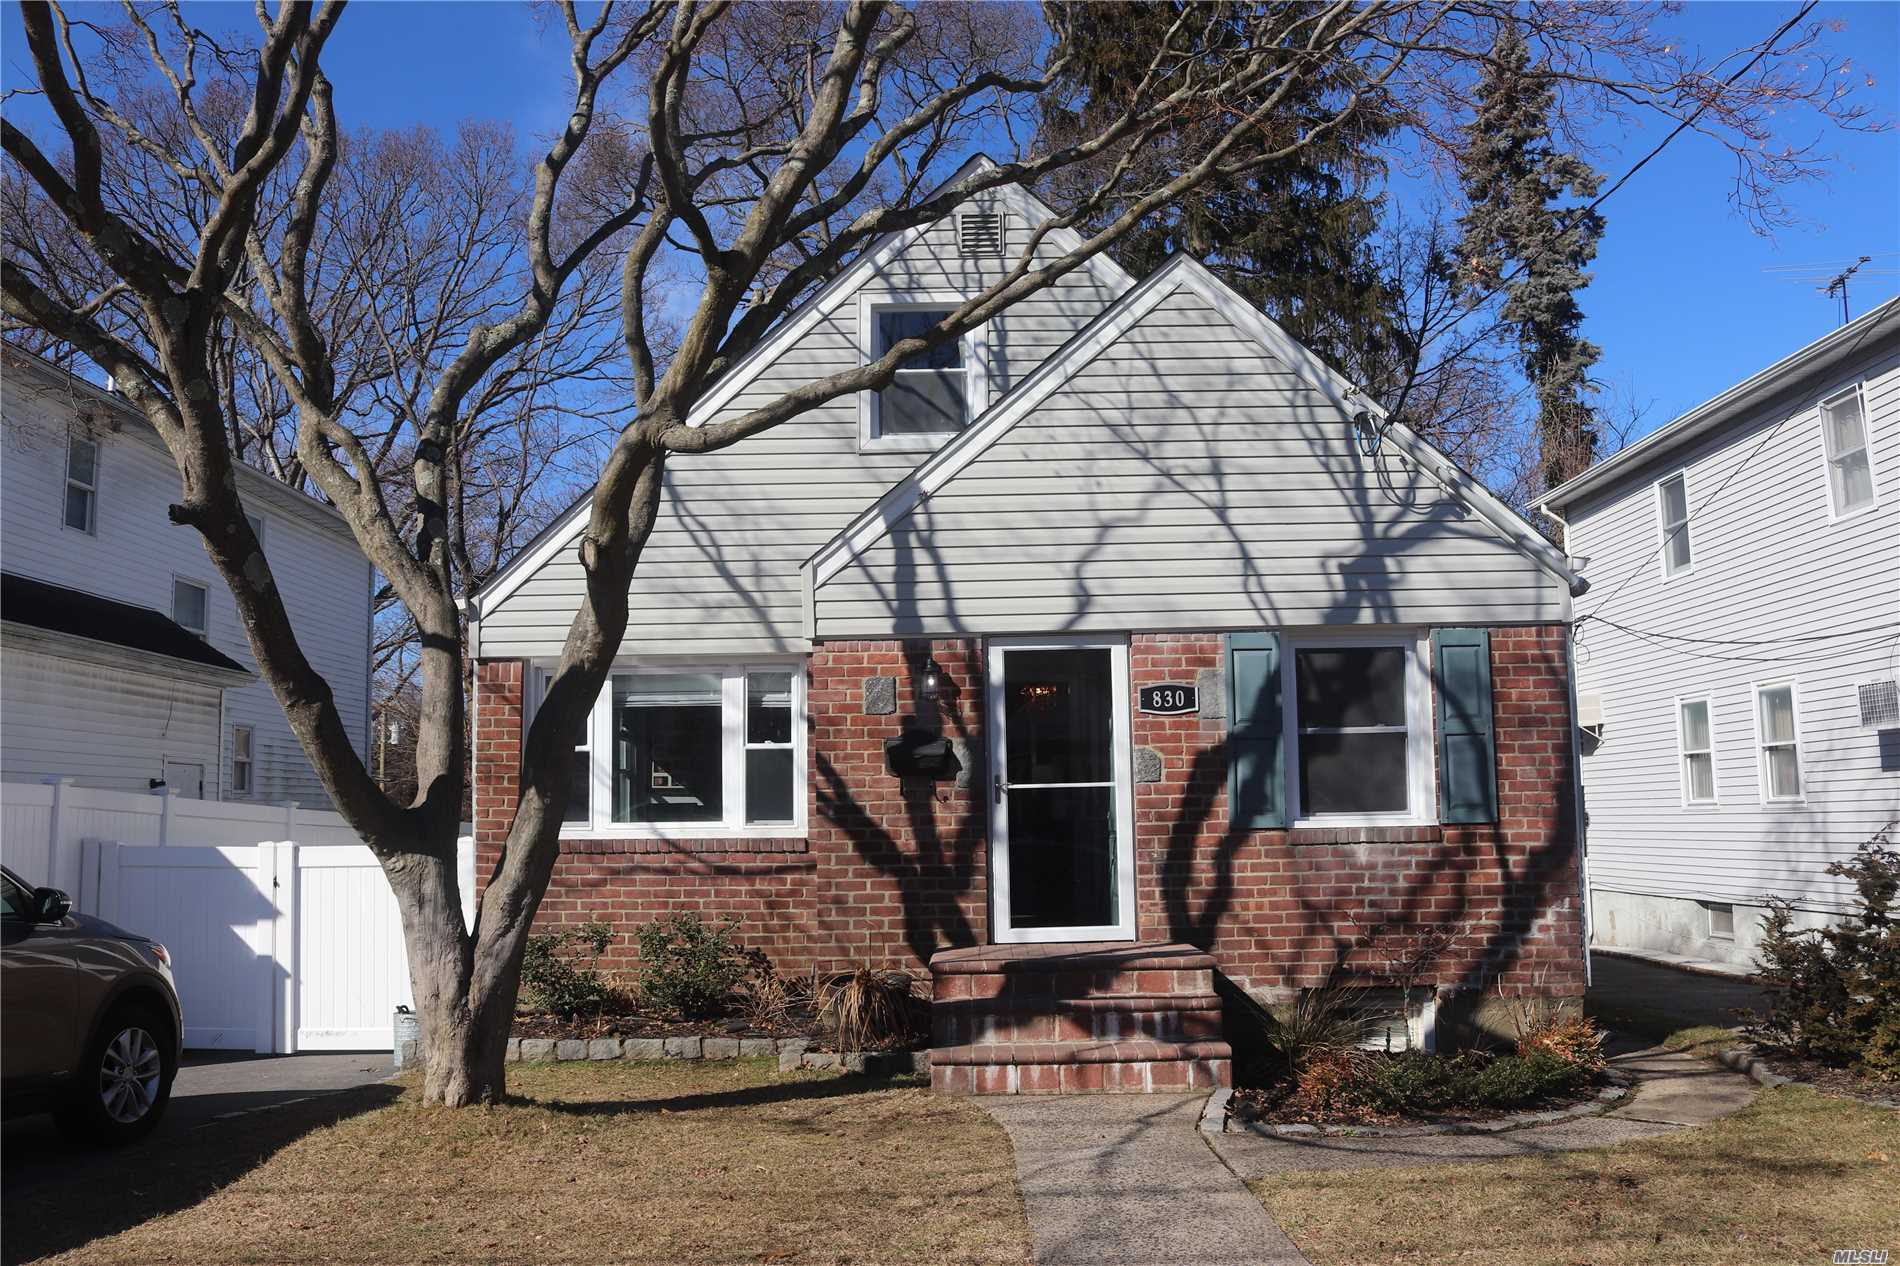 This Home Is New From The Roof Down To The Boiler & Everything In Between, Including A Gorgeous Stainless Steal & Granite Kitchen, Move-Rt-In !      6 Split System Ac Units Throughout The House